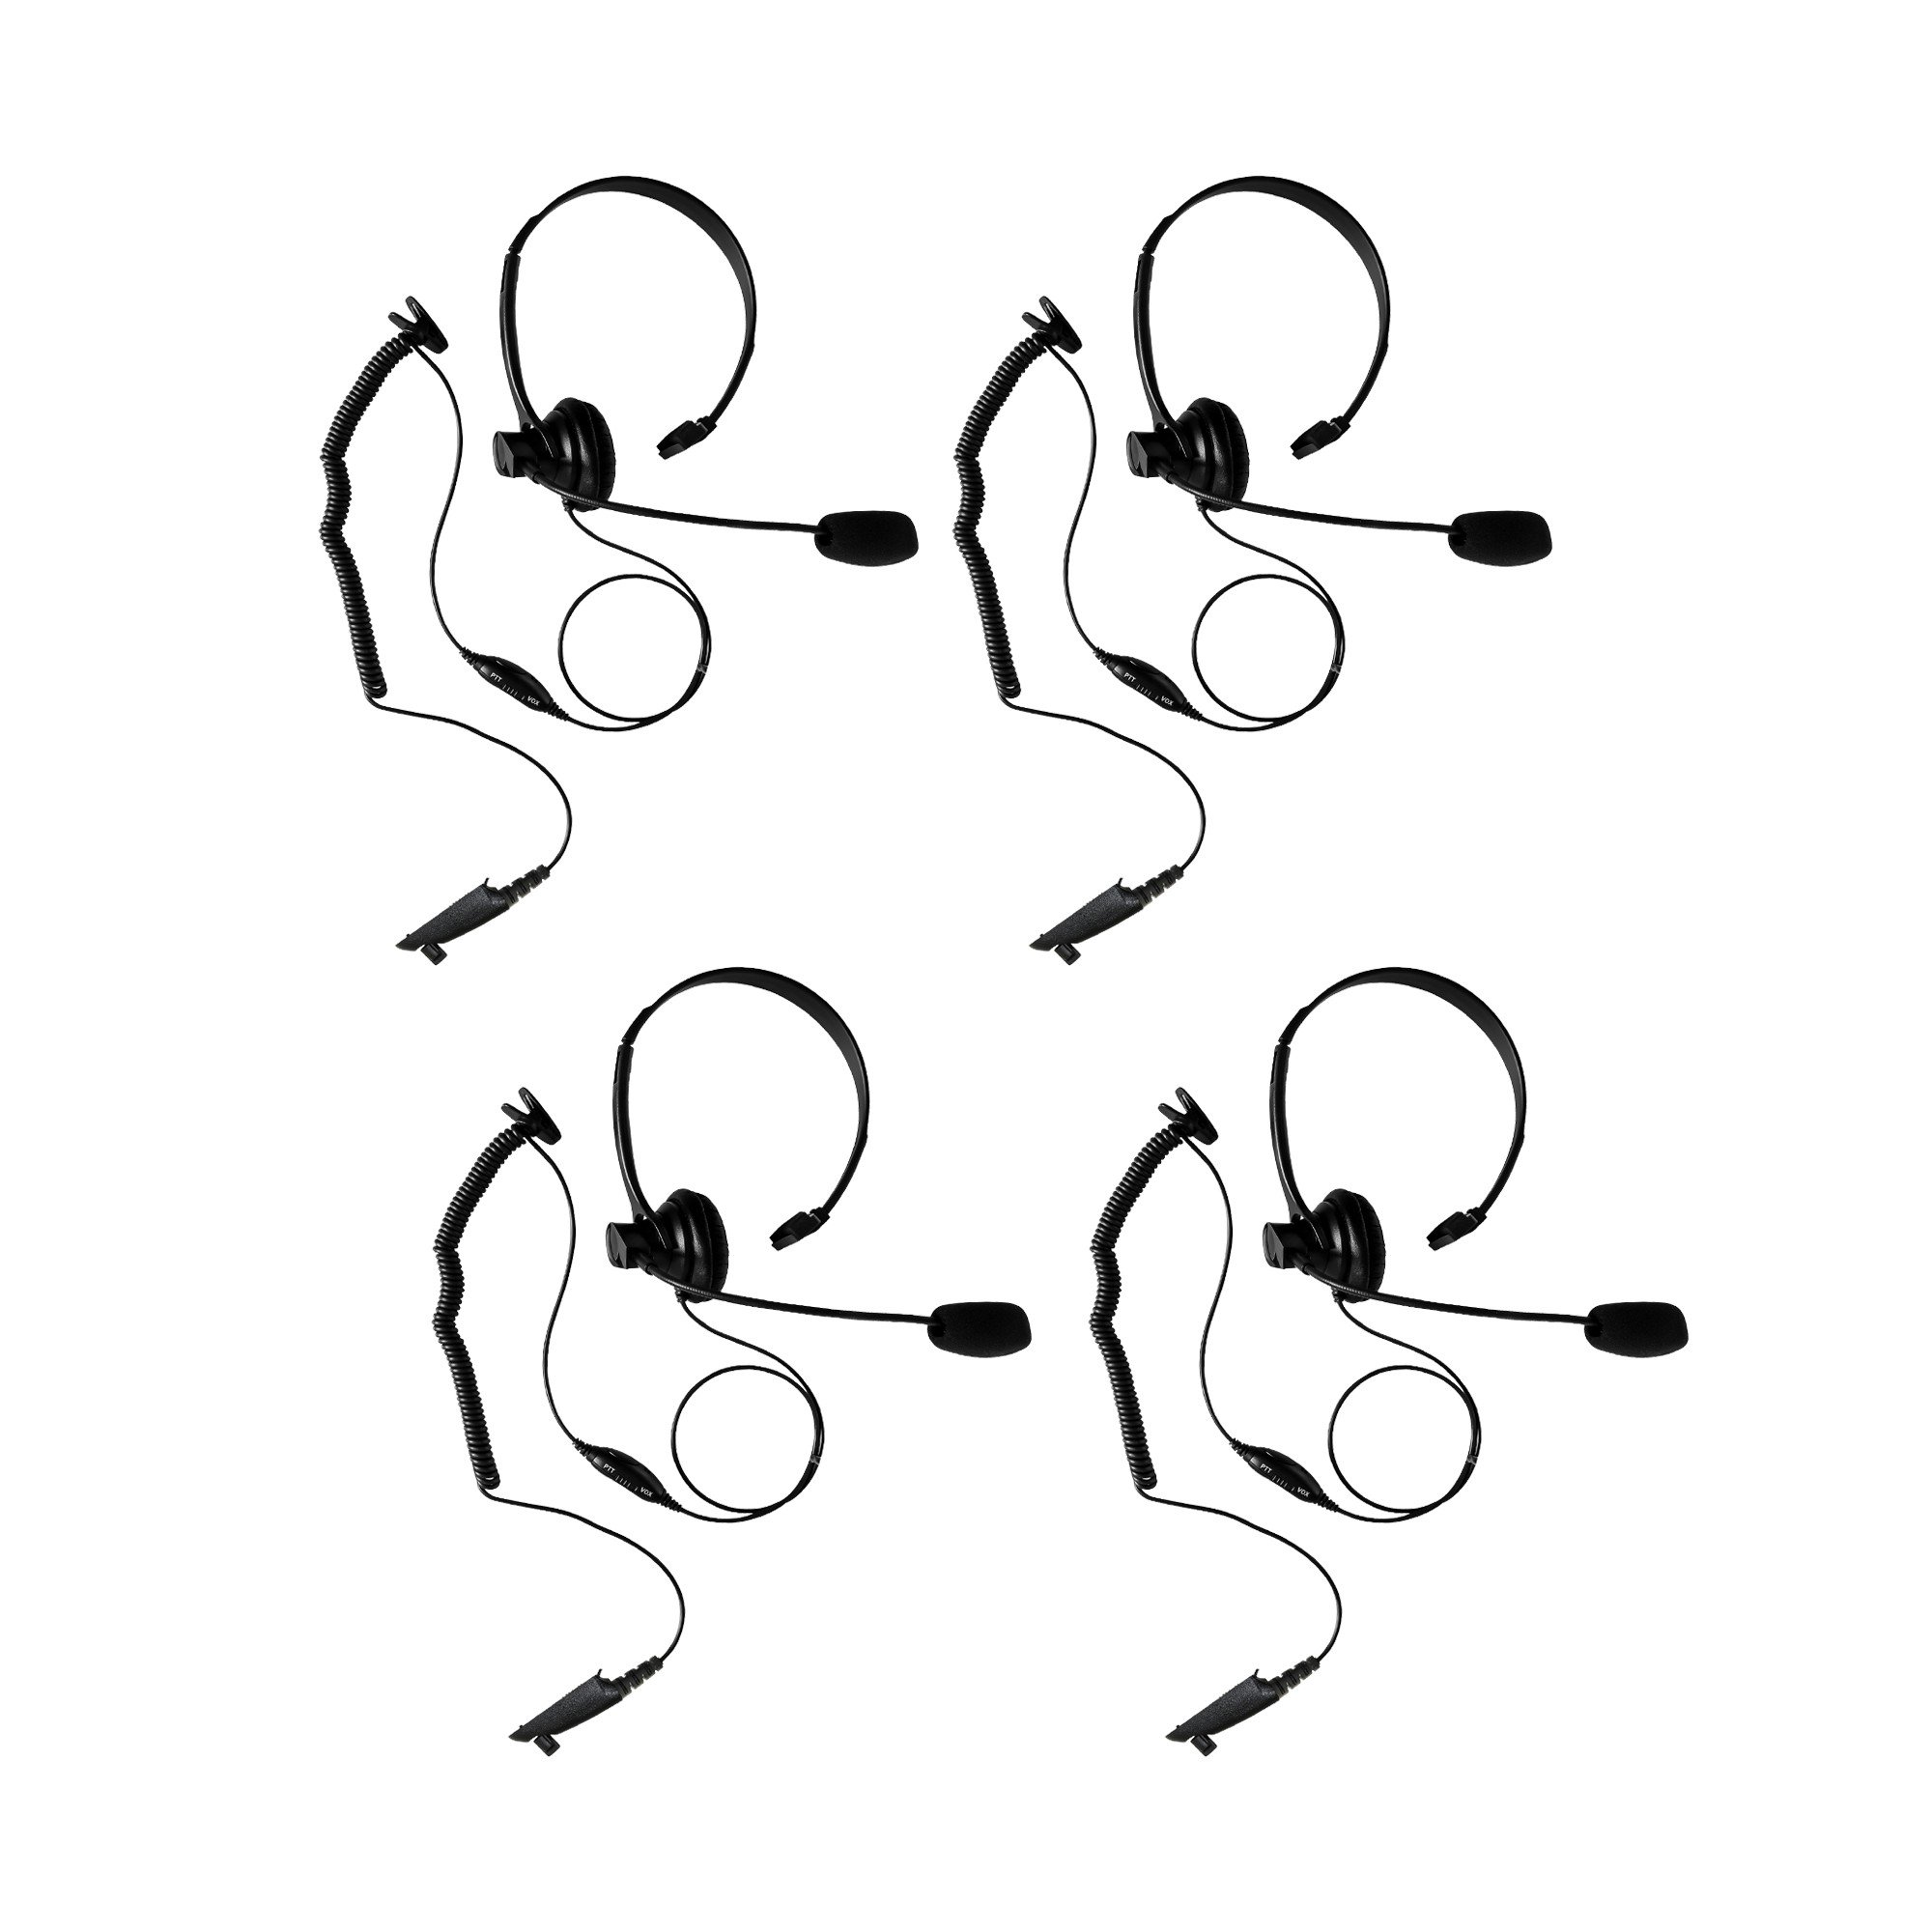 4Pack Maxtop AHDH1000-M5 Two Way Radio Over Head Headset Boom Mic for Motorola HT750 HT1250 GP328 GP329 PRO7150